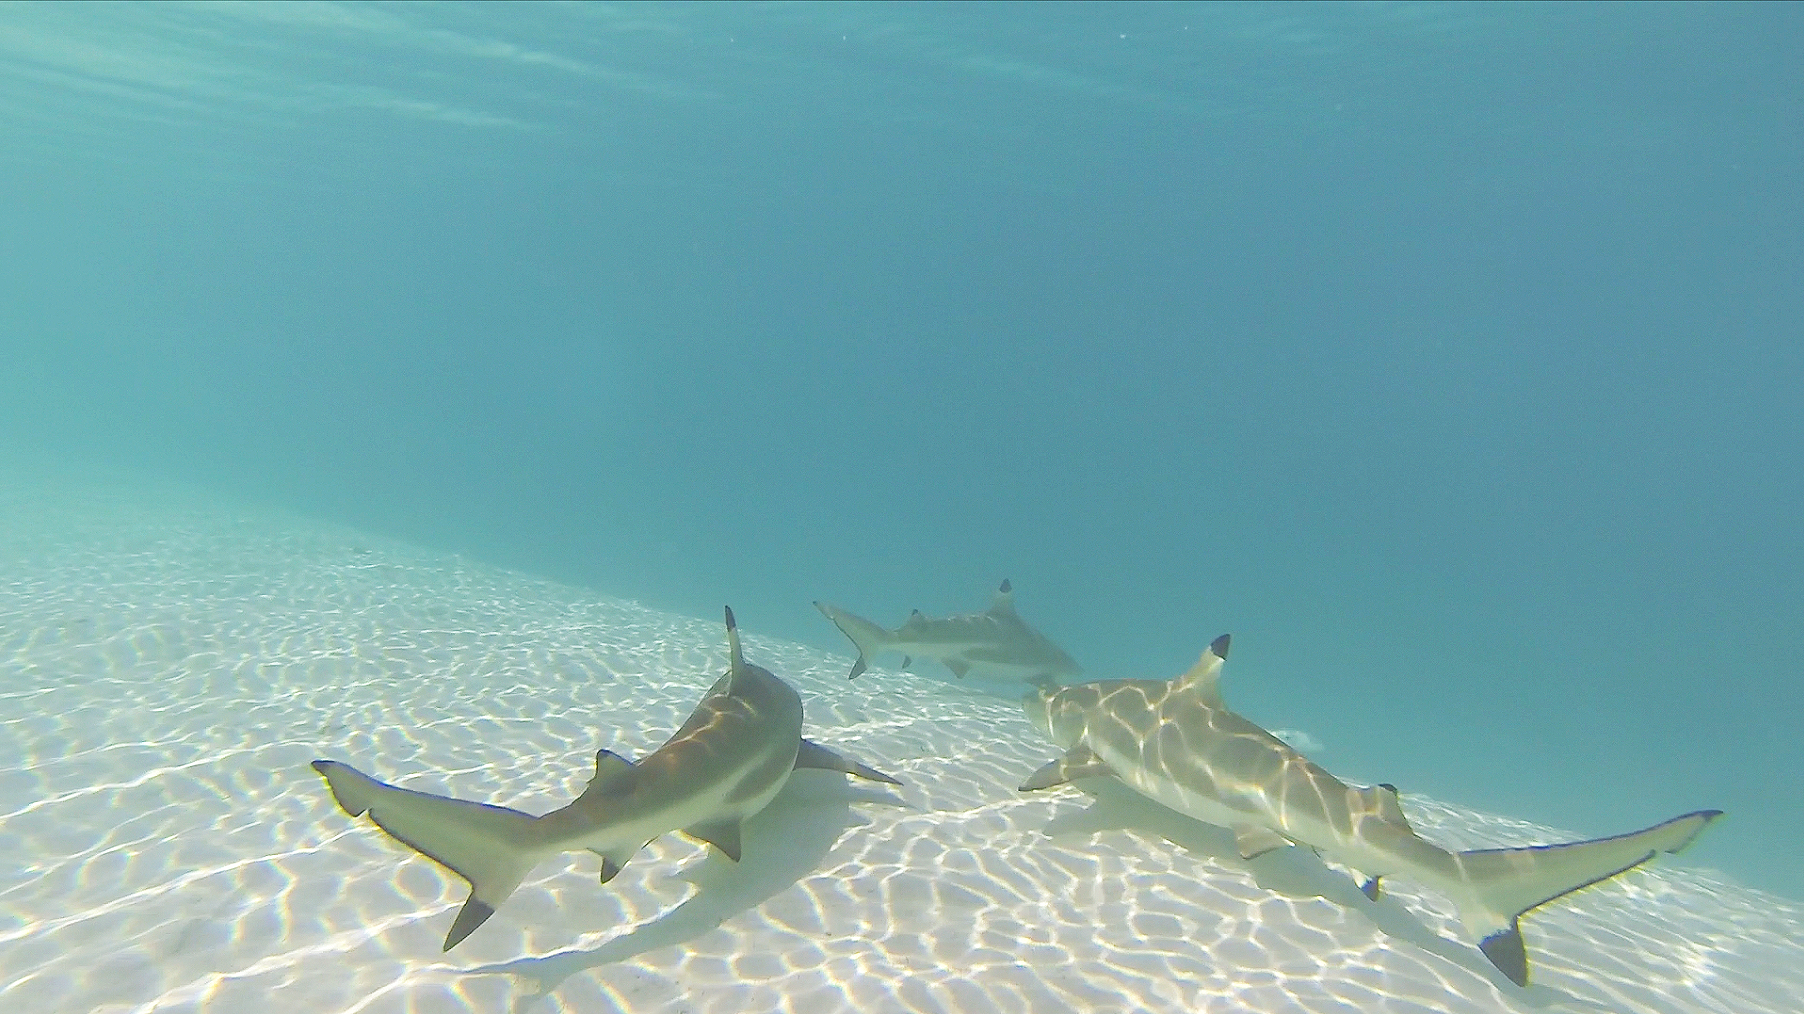 moorea-tahiti-treasure-shallow-sharks